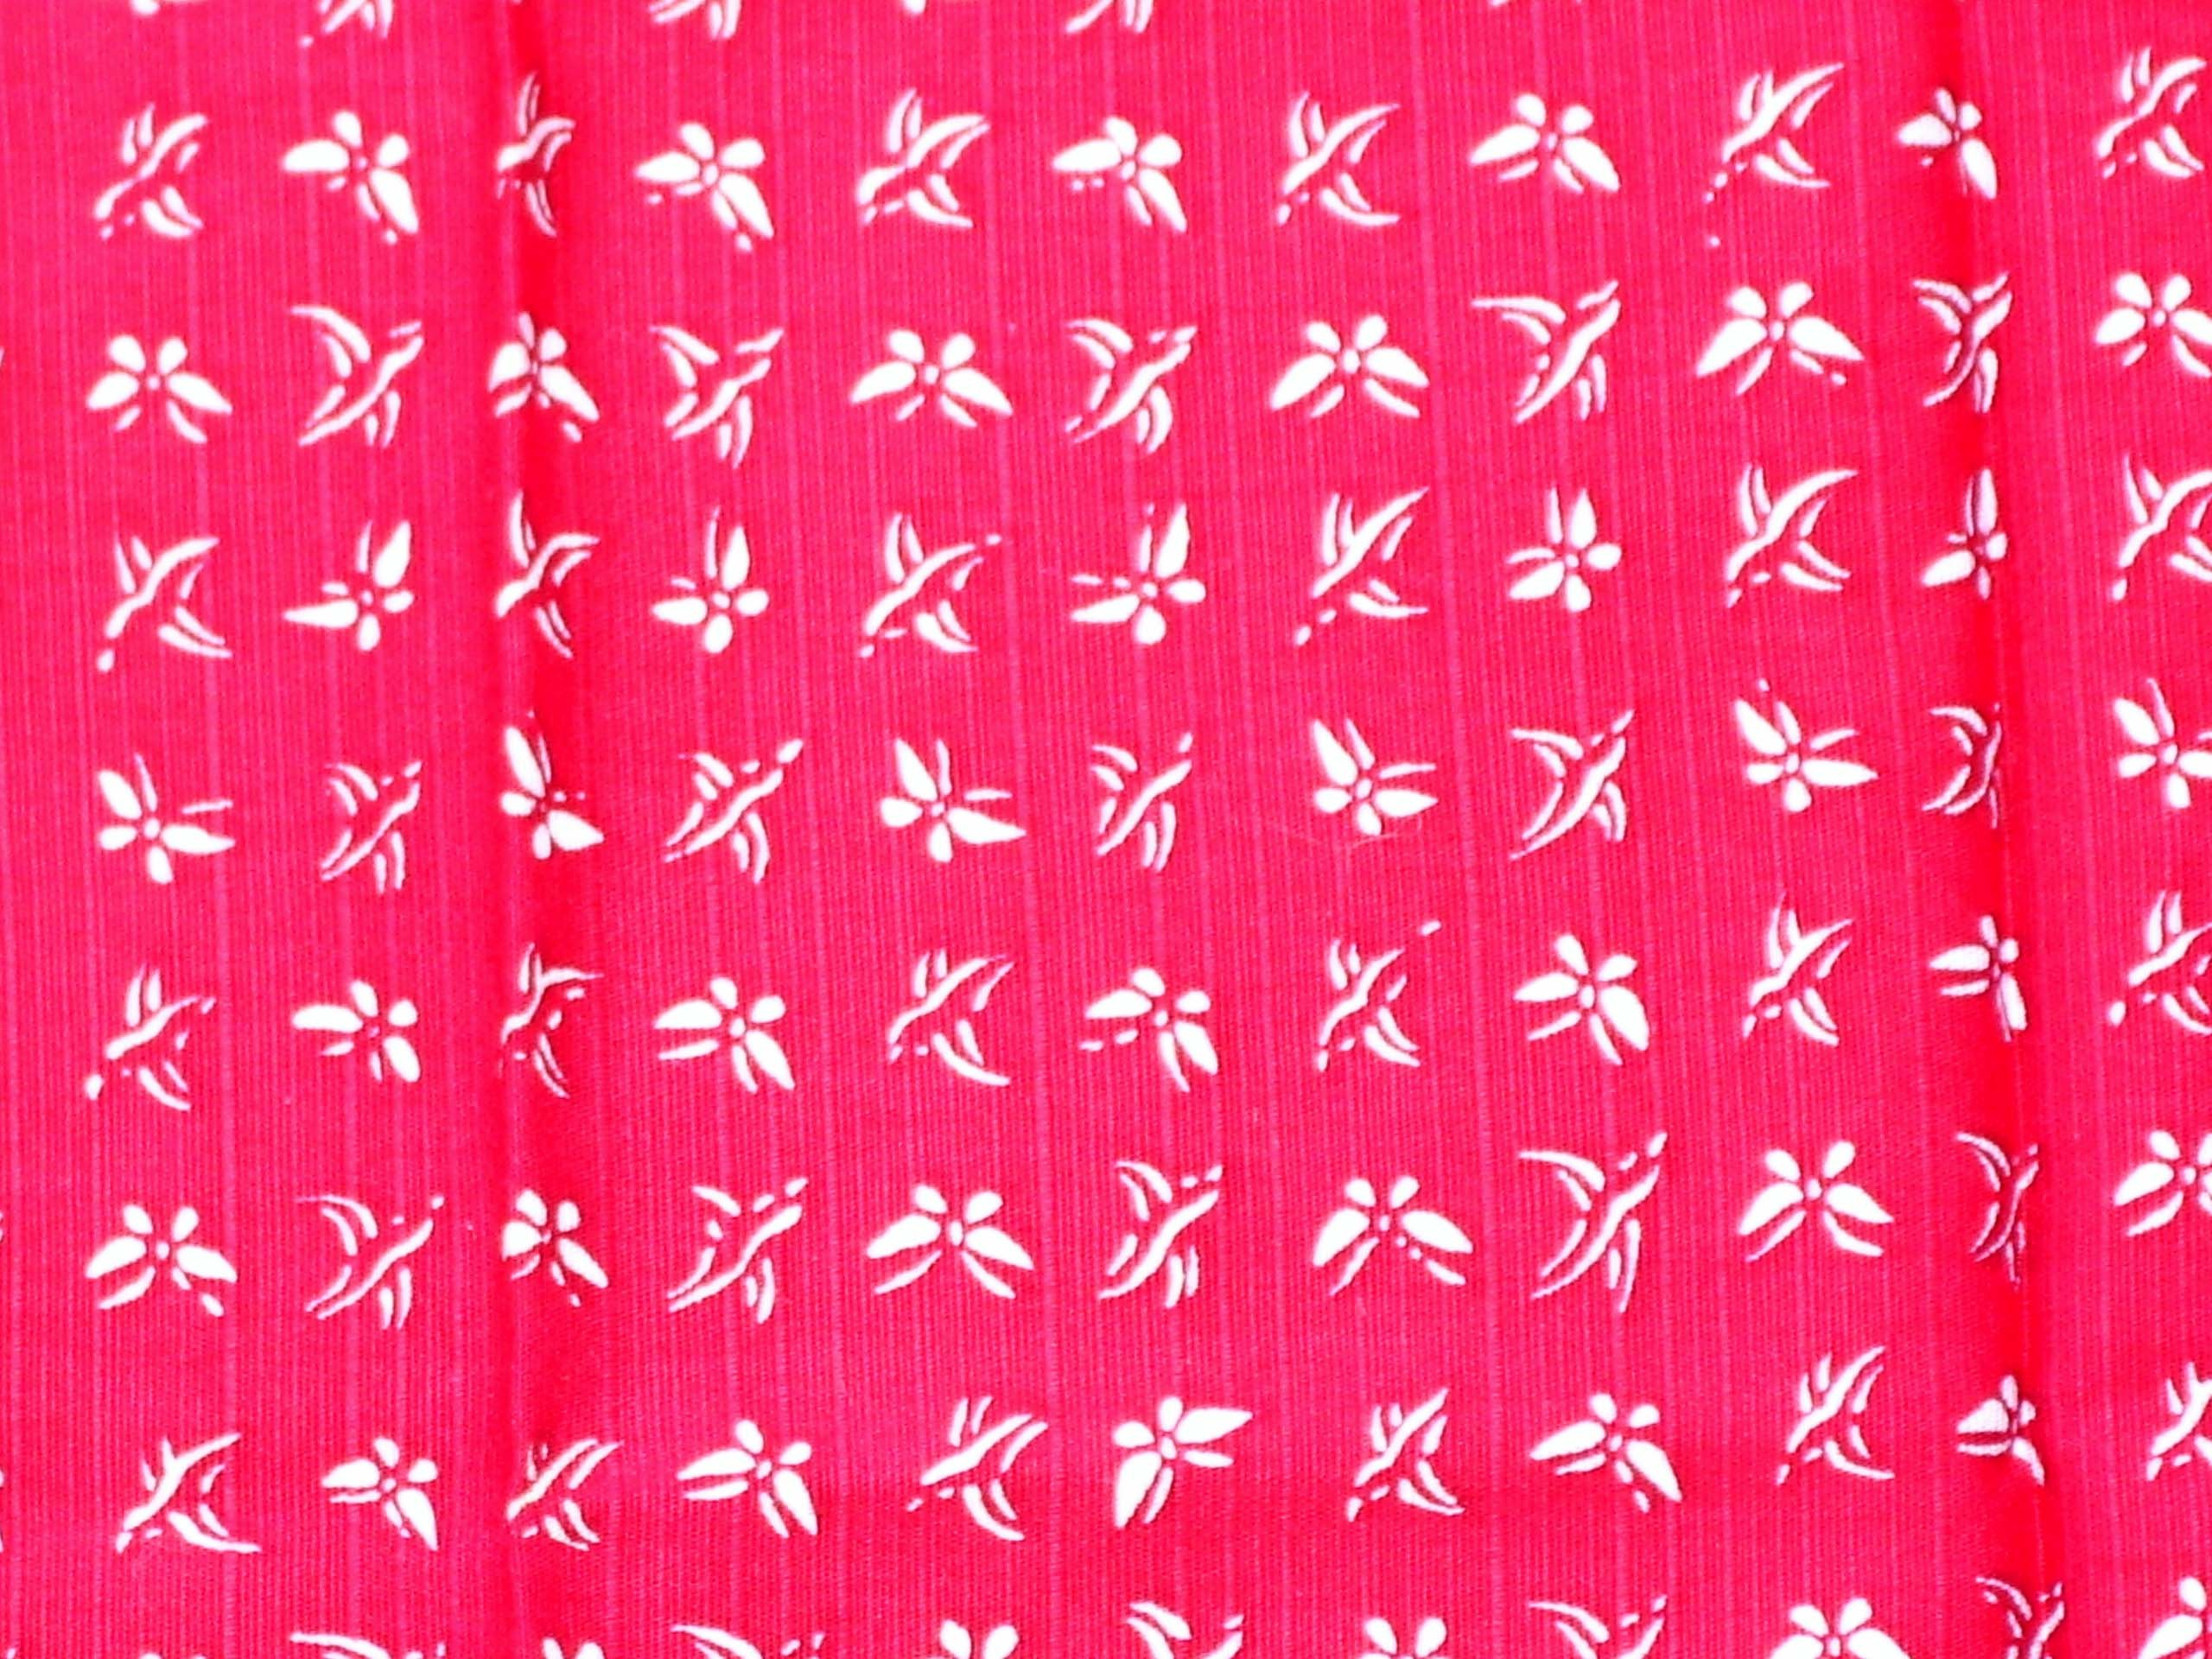 Handdkerchief_from_savers_japan_made_1